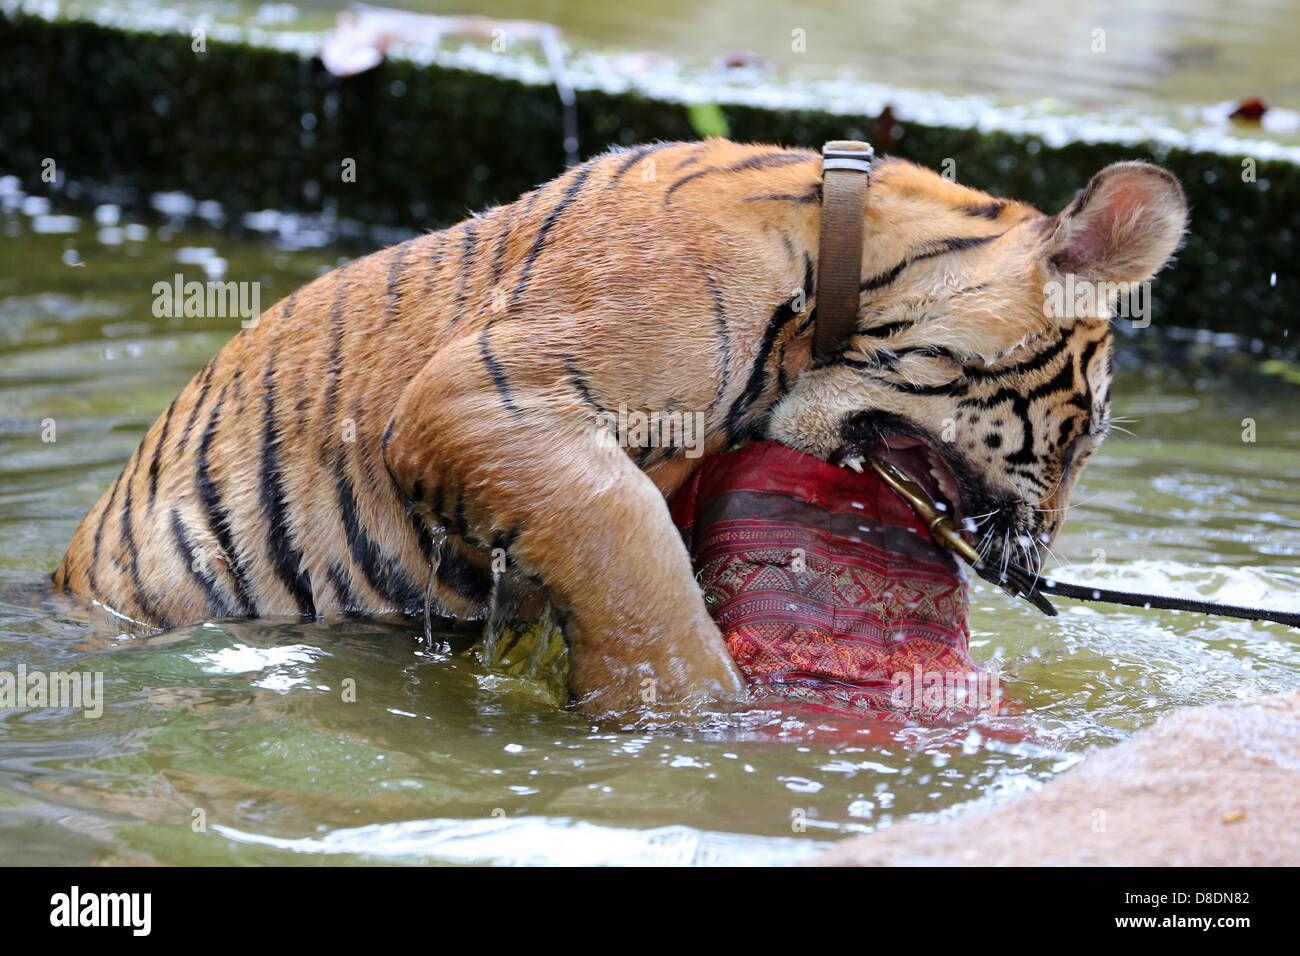 Kanchanaburi, Thailand. 26th May, 2013. Tigers are used to living in hot countries, but even the best of them can't - Stock Image